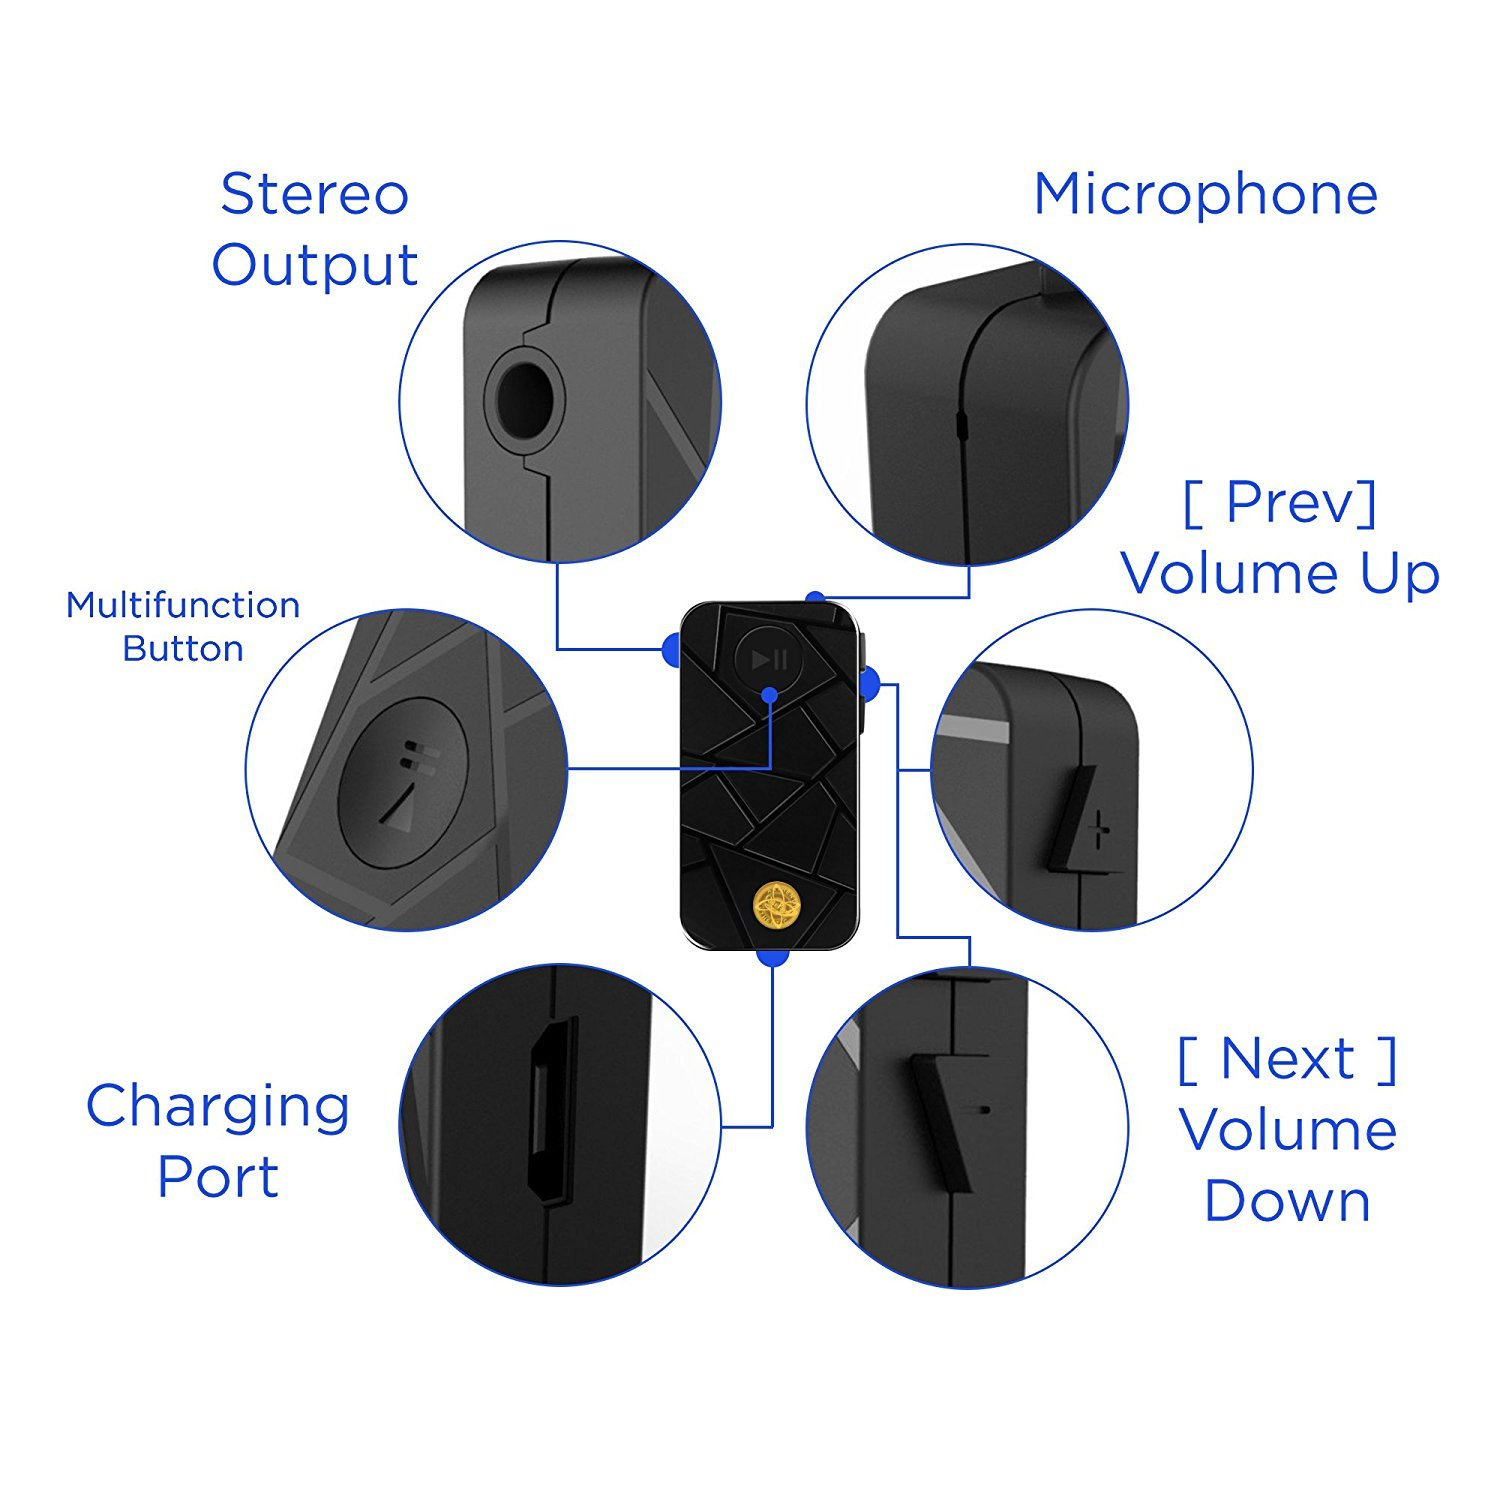 FlatFin Bluetooth Hands-free Car Kit MP3 Music Player for iPhone X 8G 7 Plus 6s 5s Bluetooth Music Audio Stereo Adapter Receiver for Car 3.5mm AUX Samsung Galaxy S8 S7 S6 Edge C7 J7 Note 8 6 Android